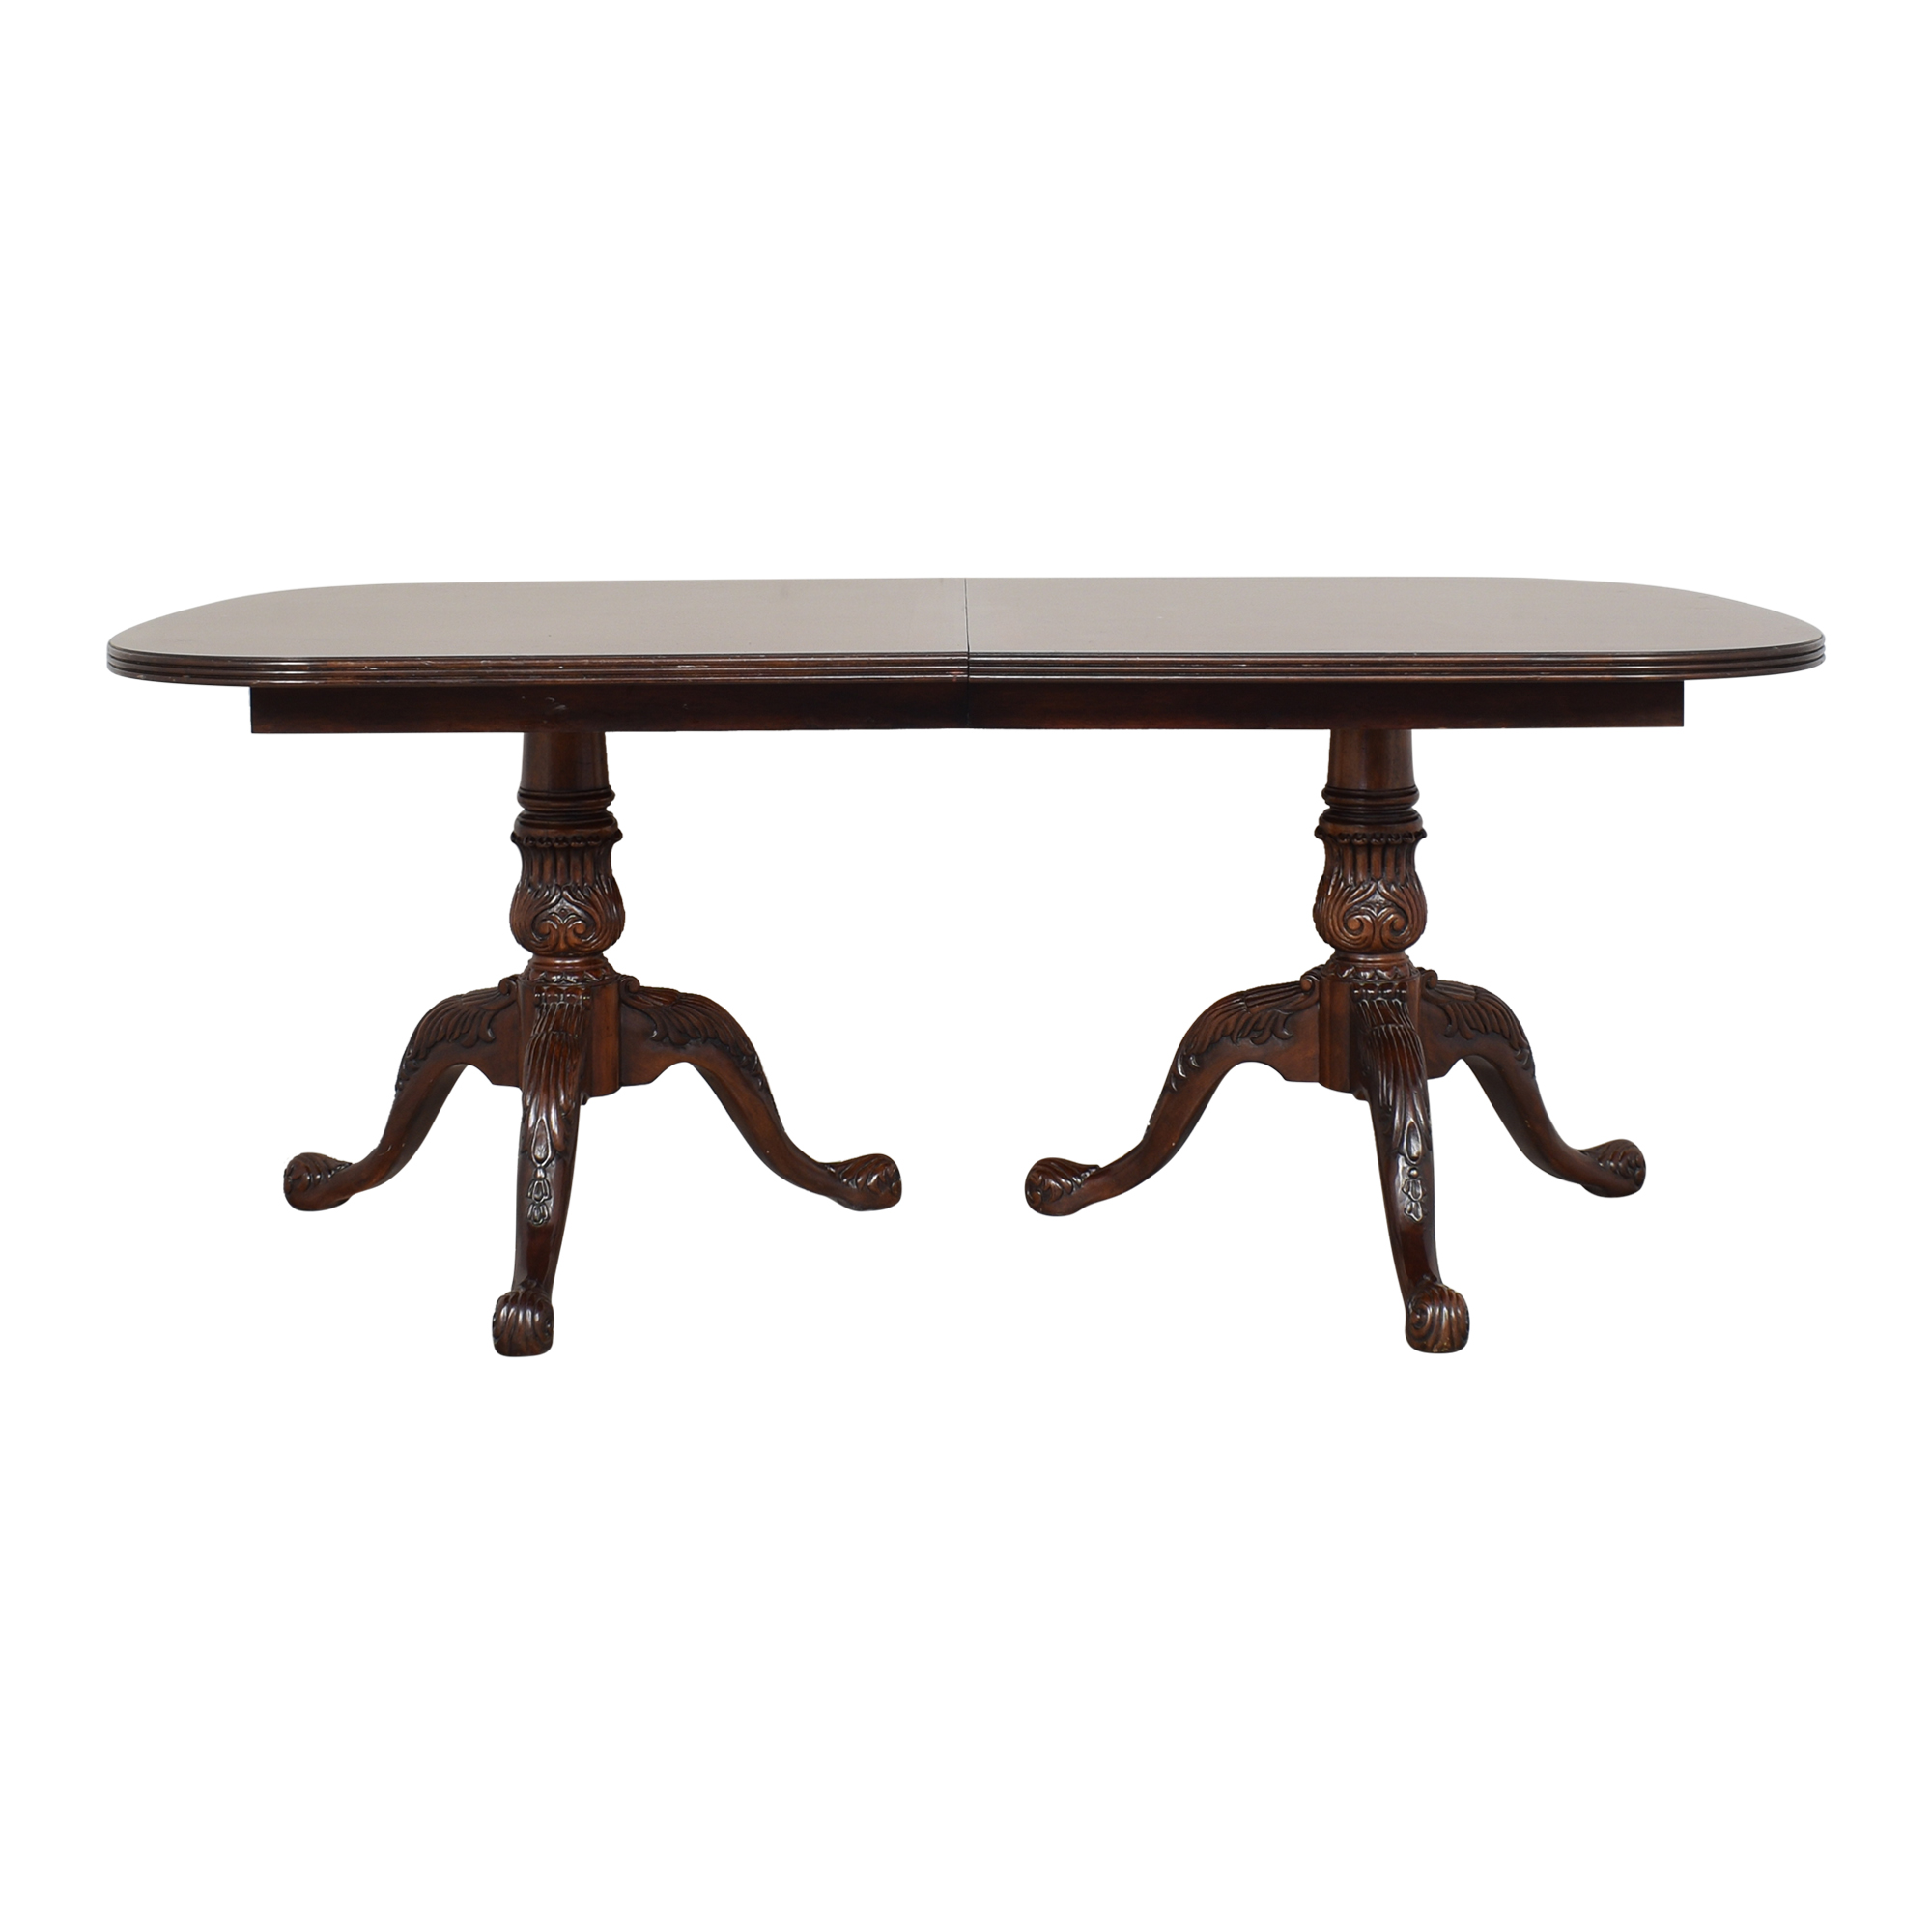 Drexel Heritage Drexel Heritage Double Pedestal Extendable Dining Table ct